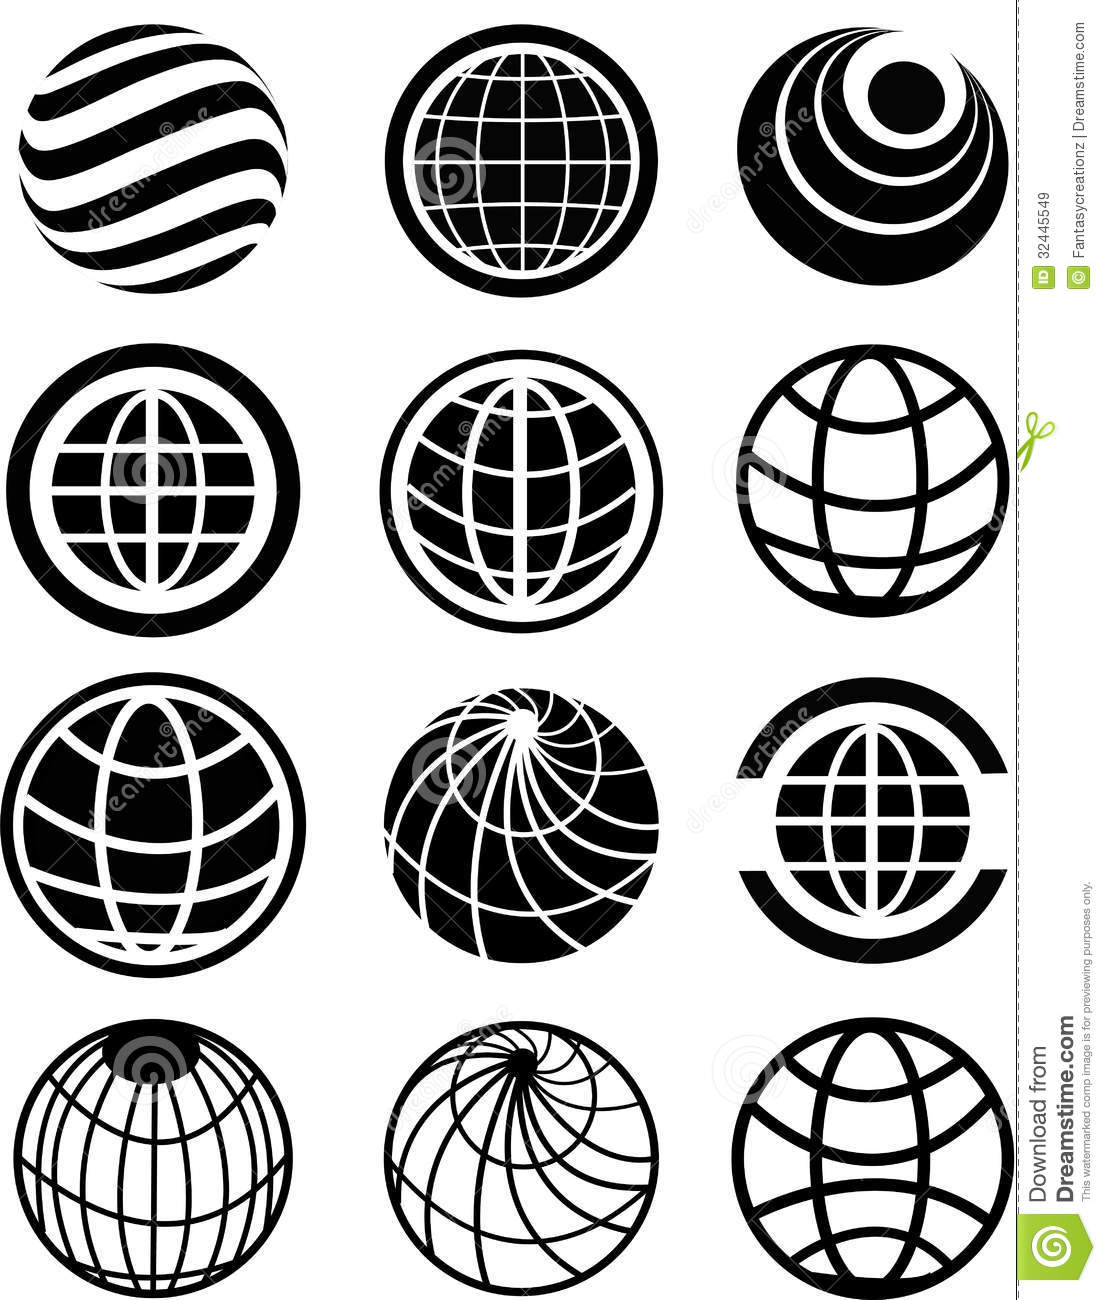 Six Clipart Black And White Globe Icons Royalty Fr...